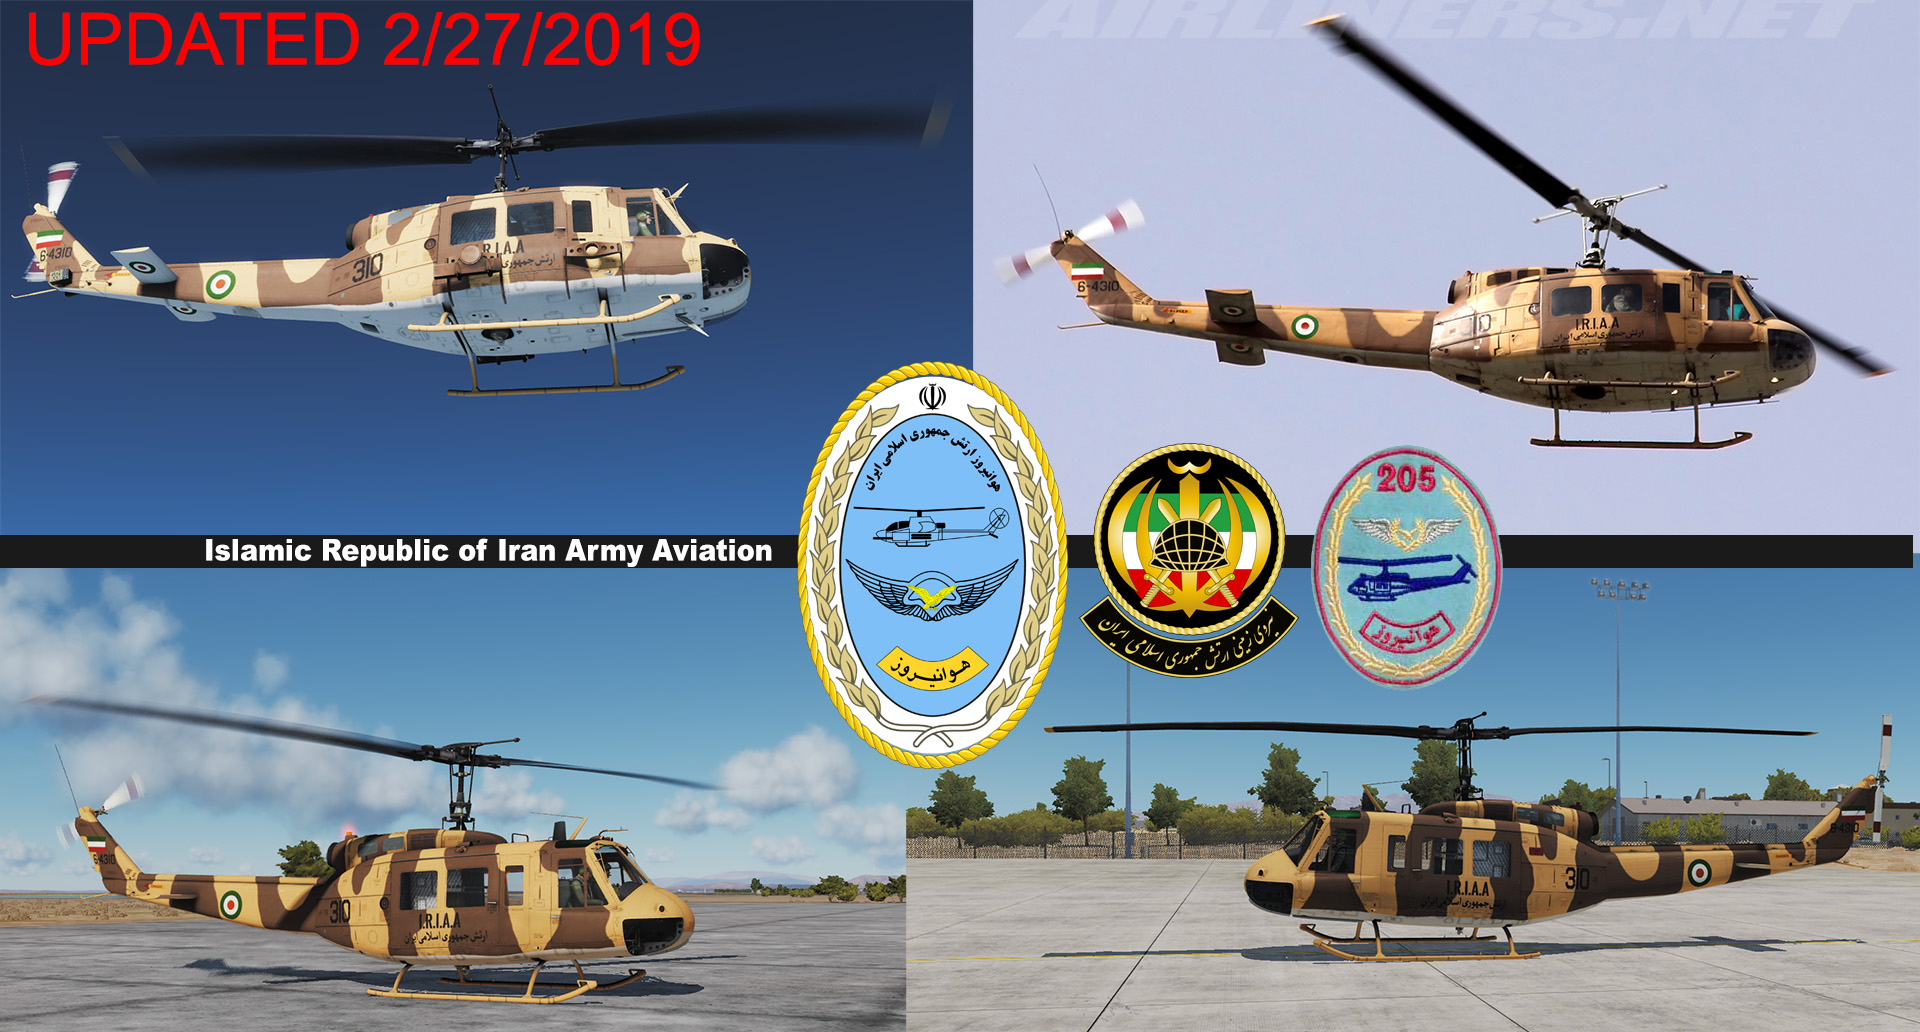 IRAN ARMY AVIATION (IRIAA) 6-4310  (AB-205A) UH-1H Huey (2/27/2019) UPDATED